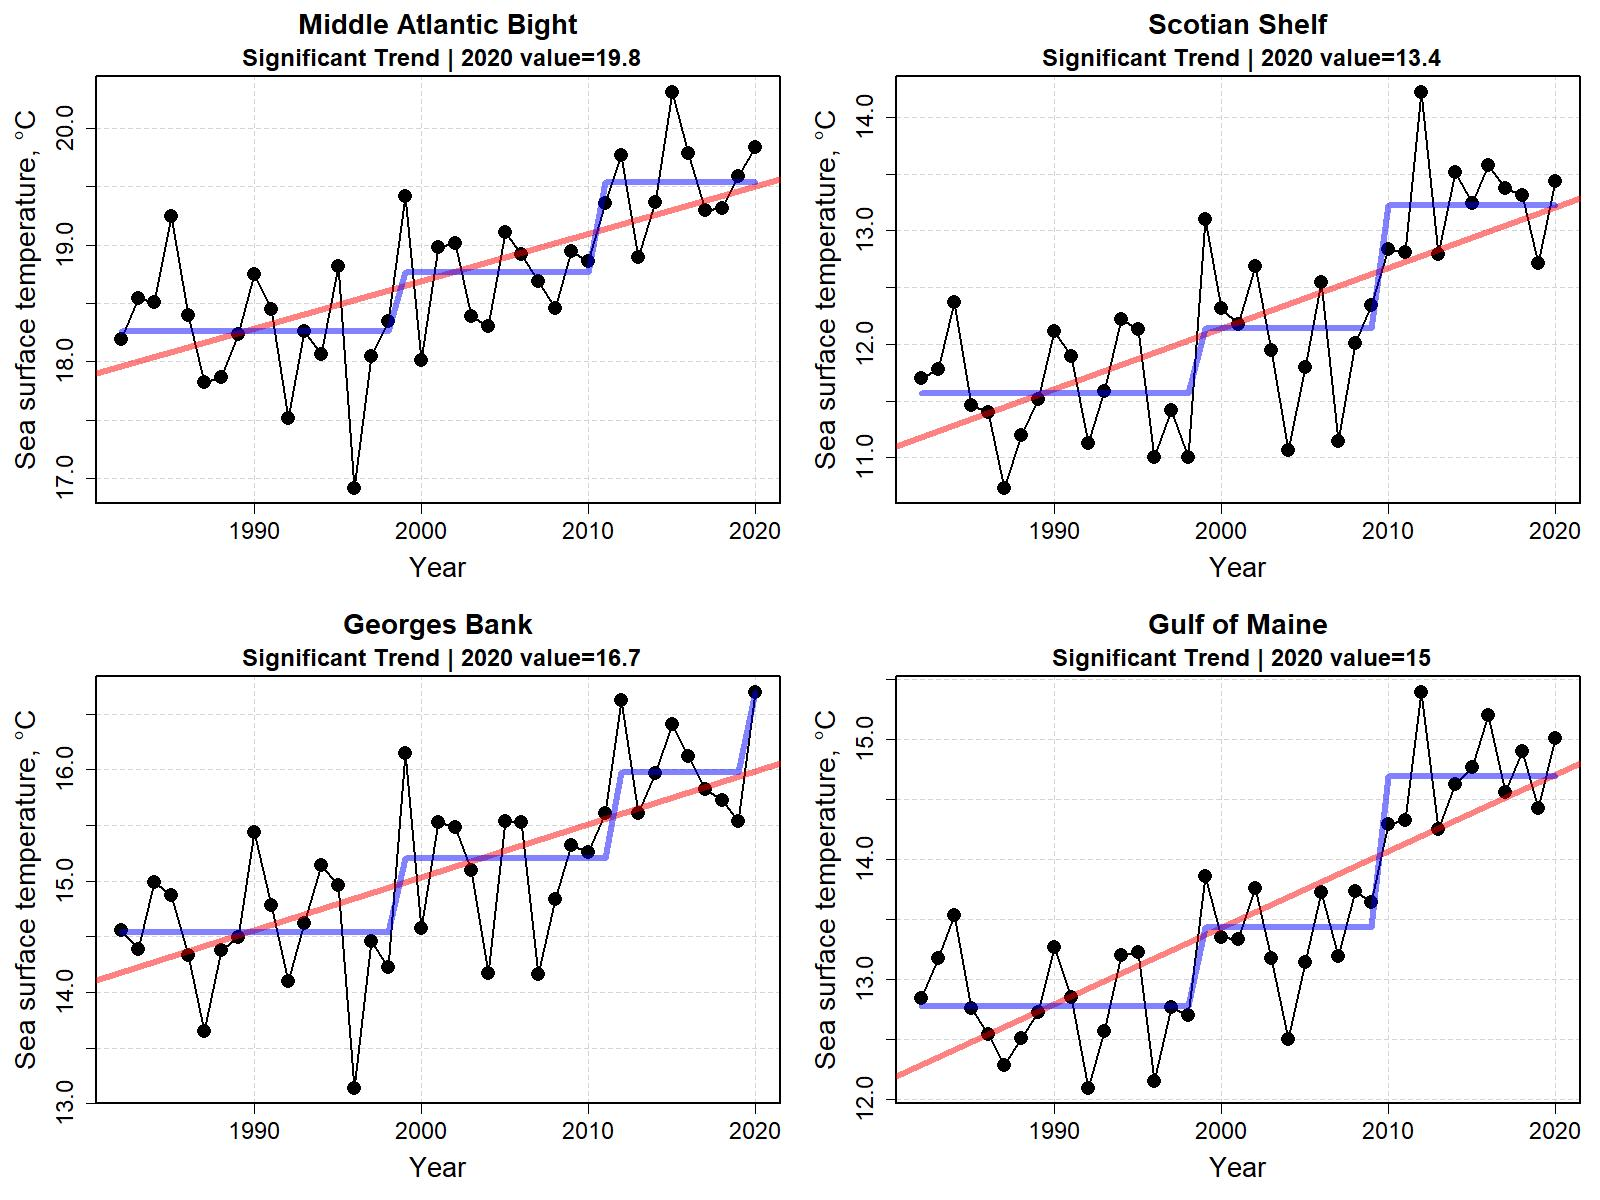 Graphs showing sea surface temperature for the last six months of the year from 1998 to 2020.  Top Row:  Middle Atlantic Bight and Georges Bank.  Bottom Row: Gulf of Maine and Scotian Shelf